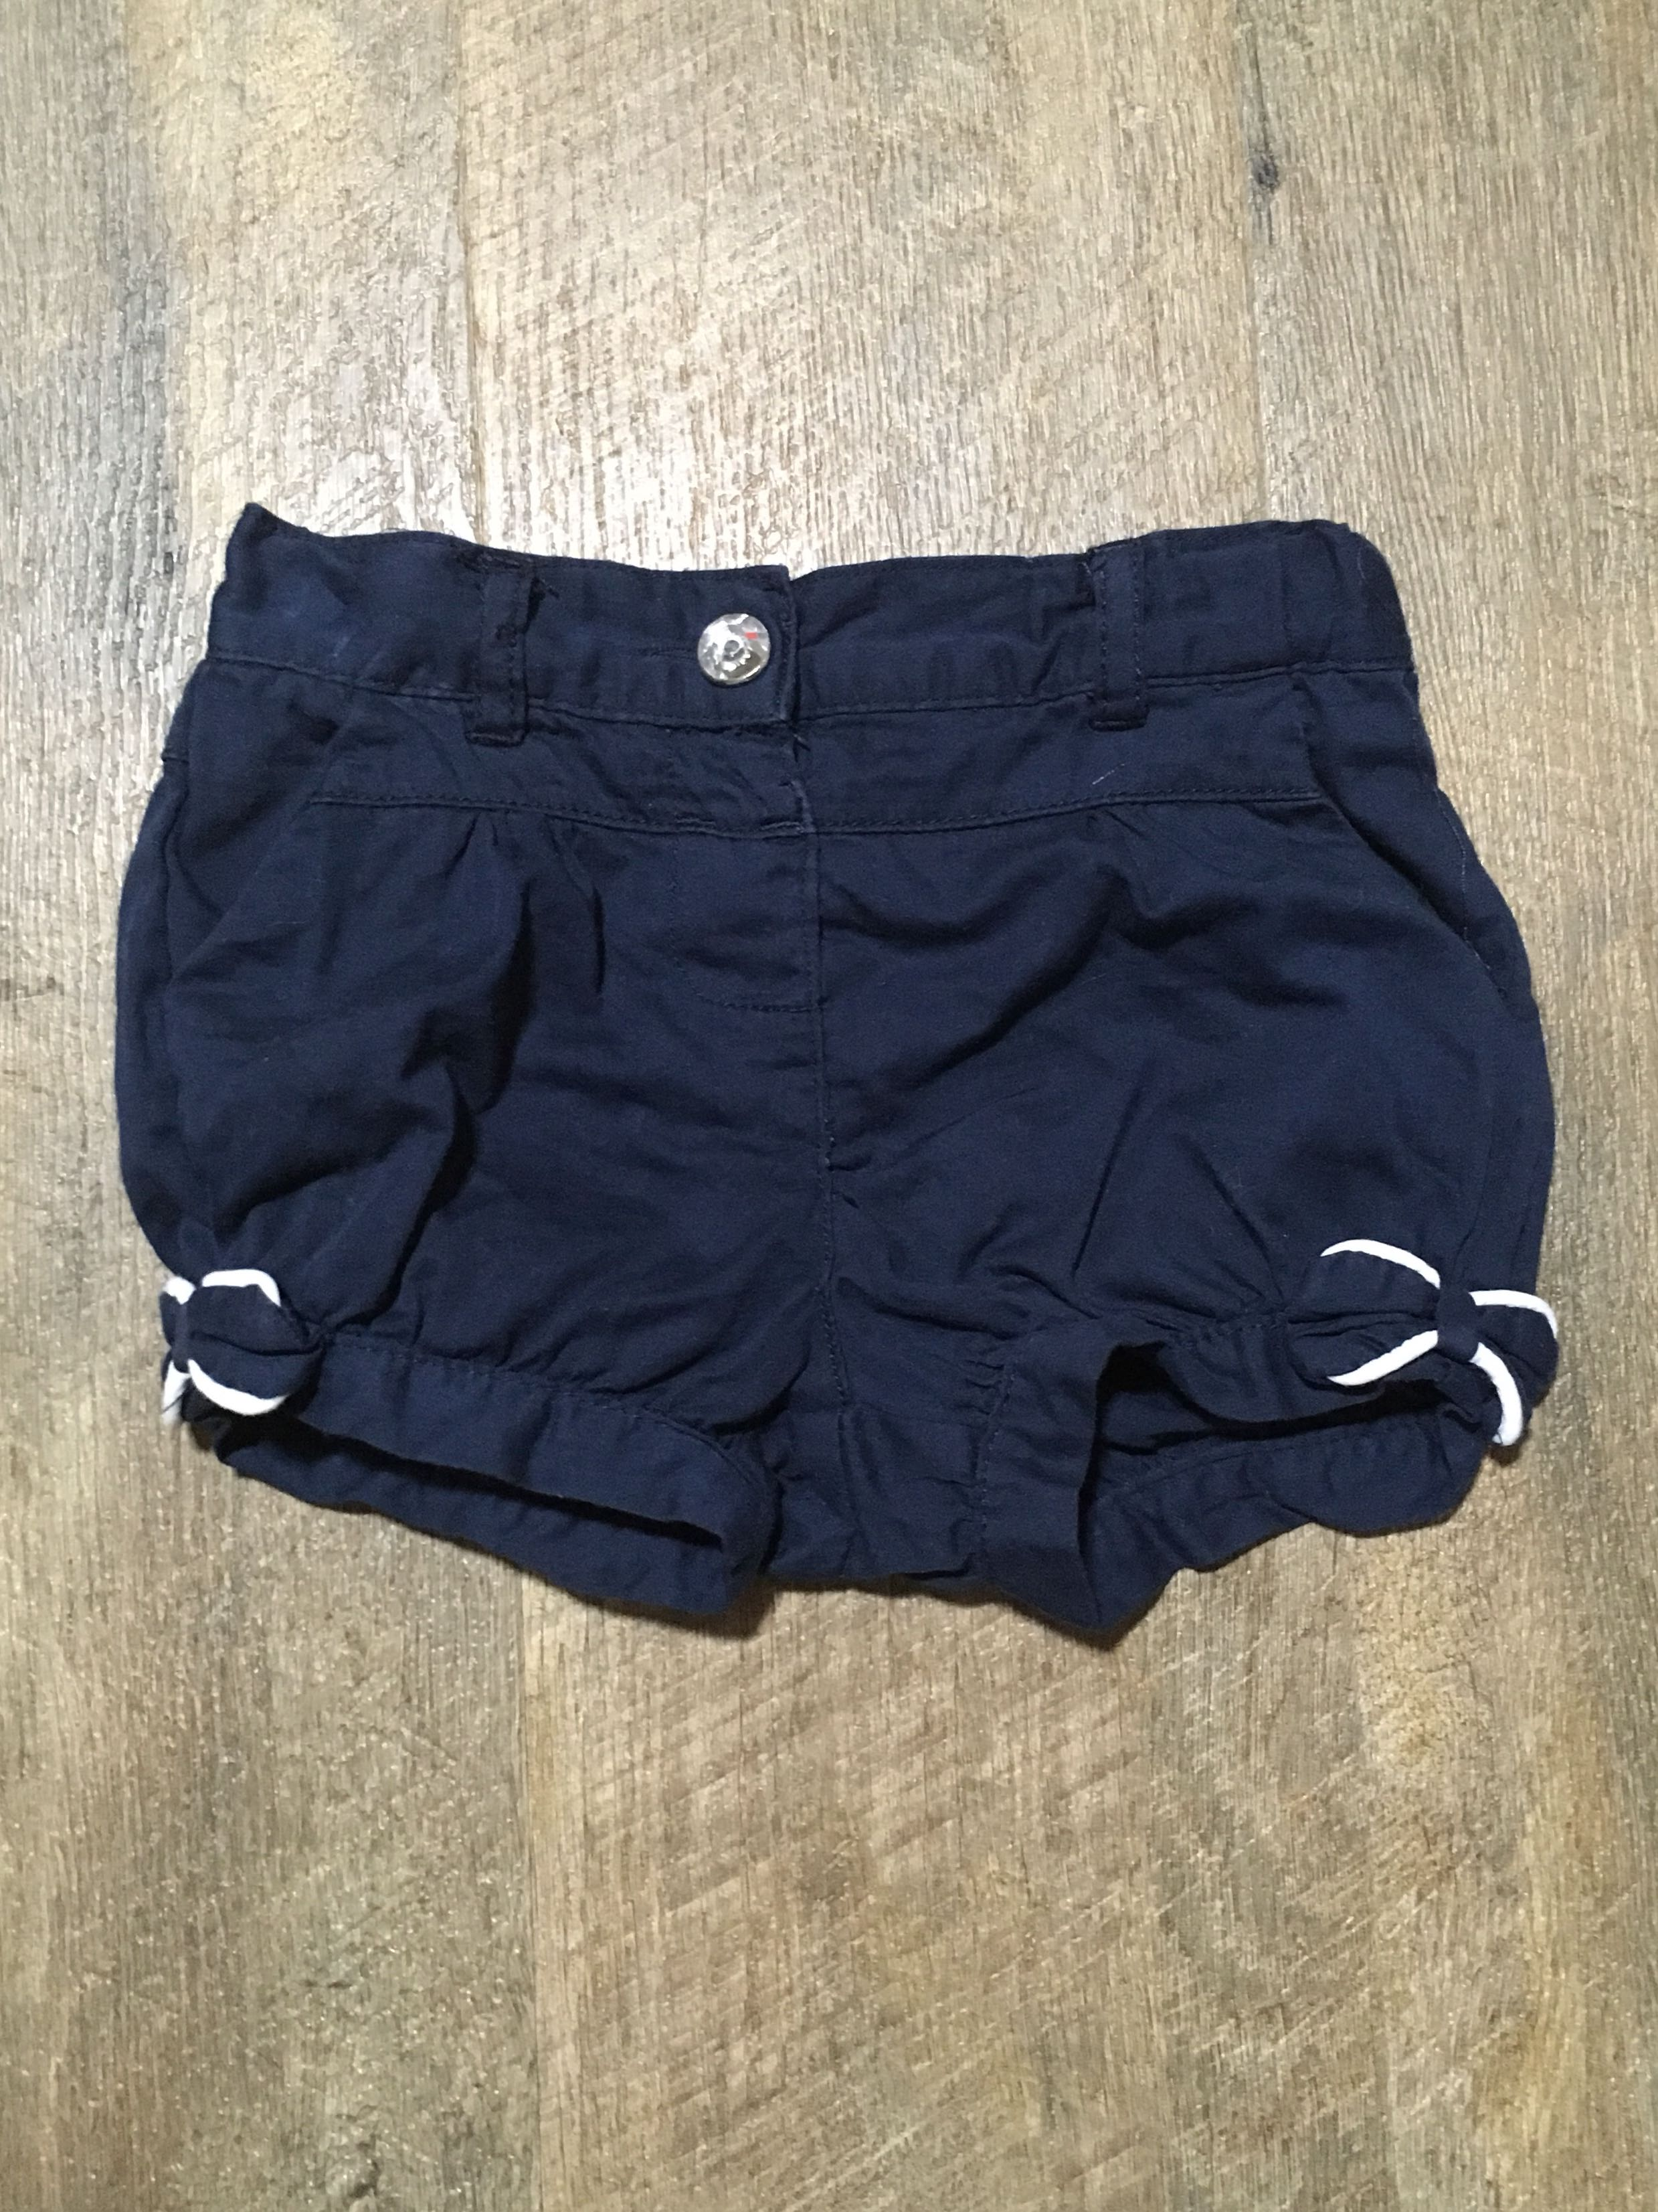 Ollie's Place navy shorts